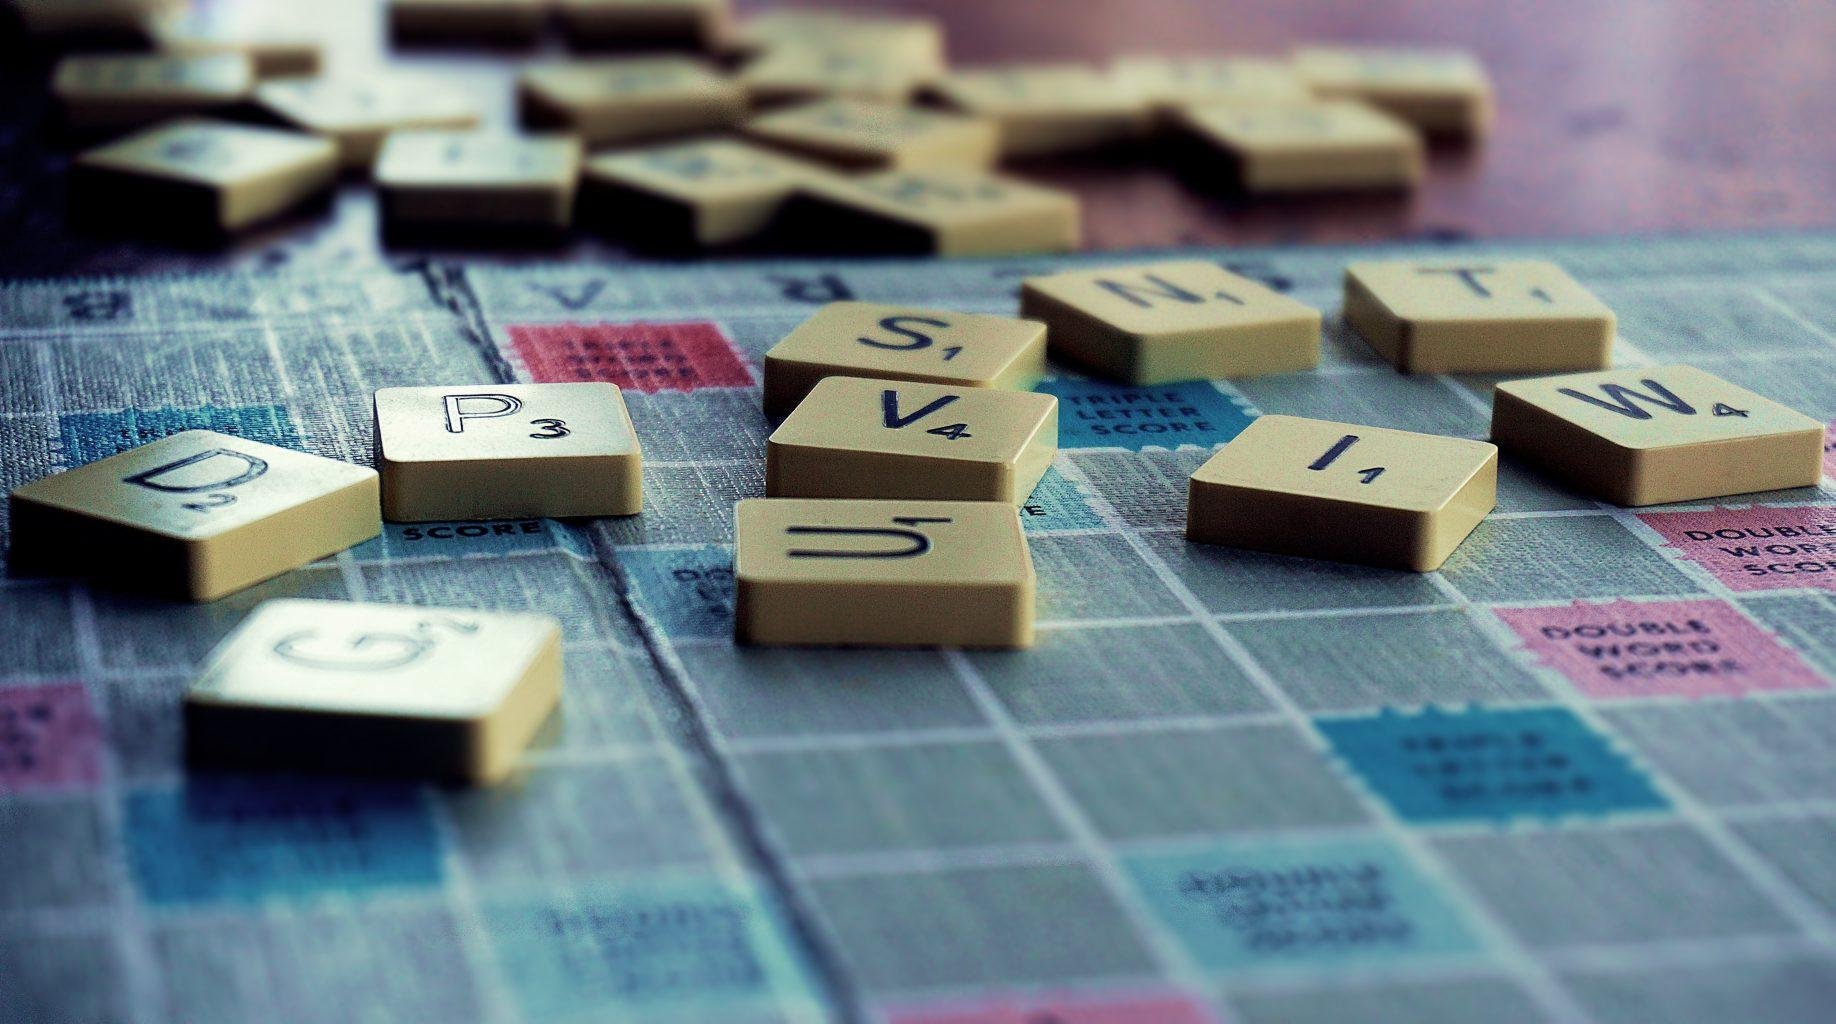 7 Fun Board Games To Play With Your Kids This Summer